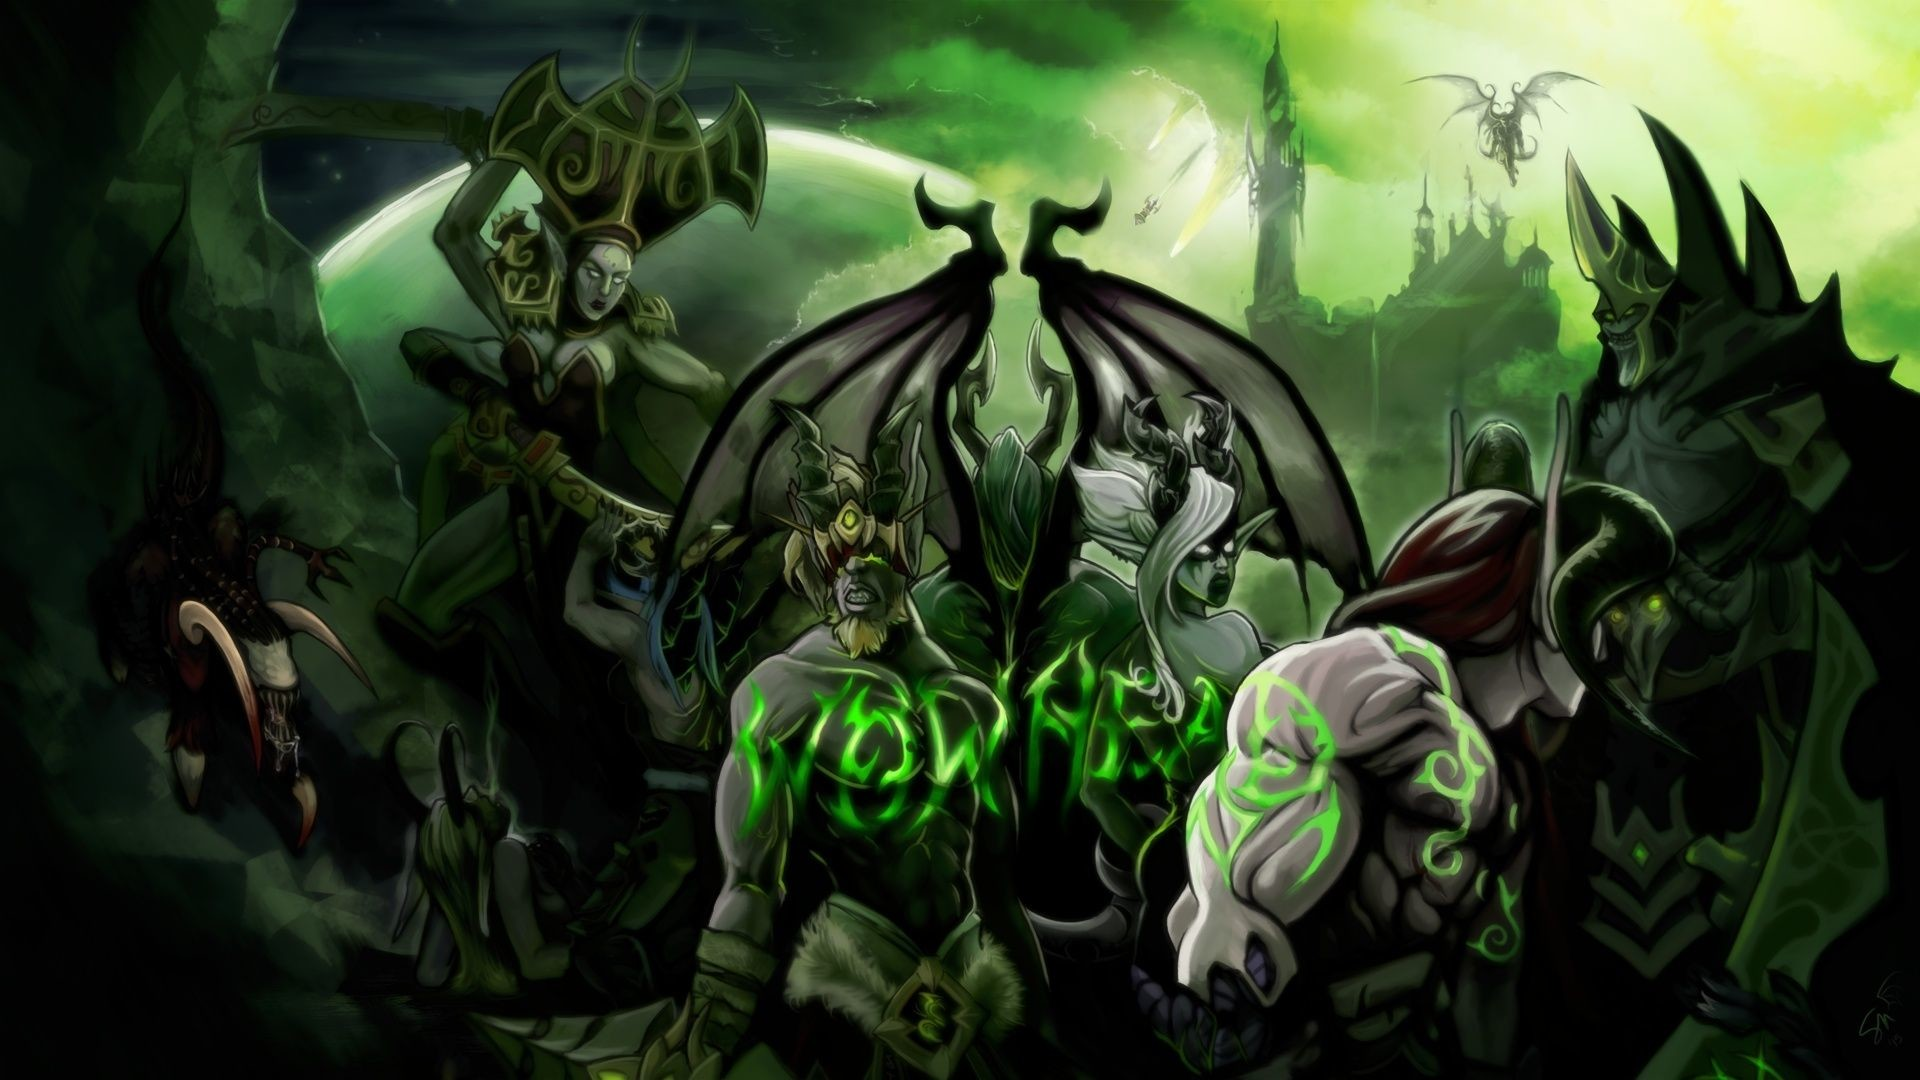 Res: 1920x1080, wow legion wallpaper images HD Wallpapers Buzz 2560×1440 Legion Wallpapers  (37 Wallpapers)